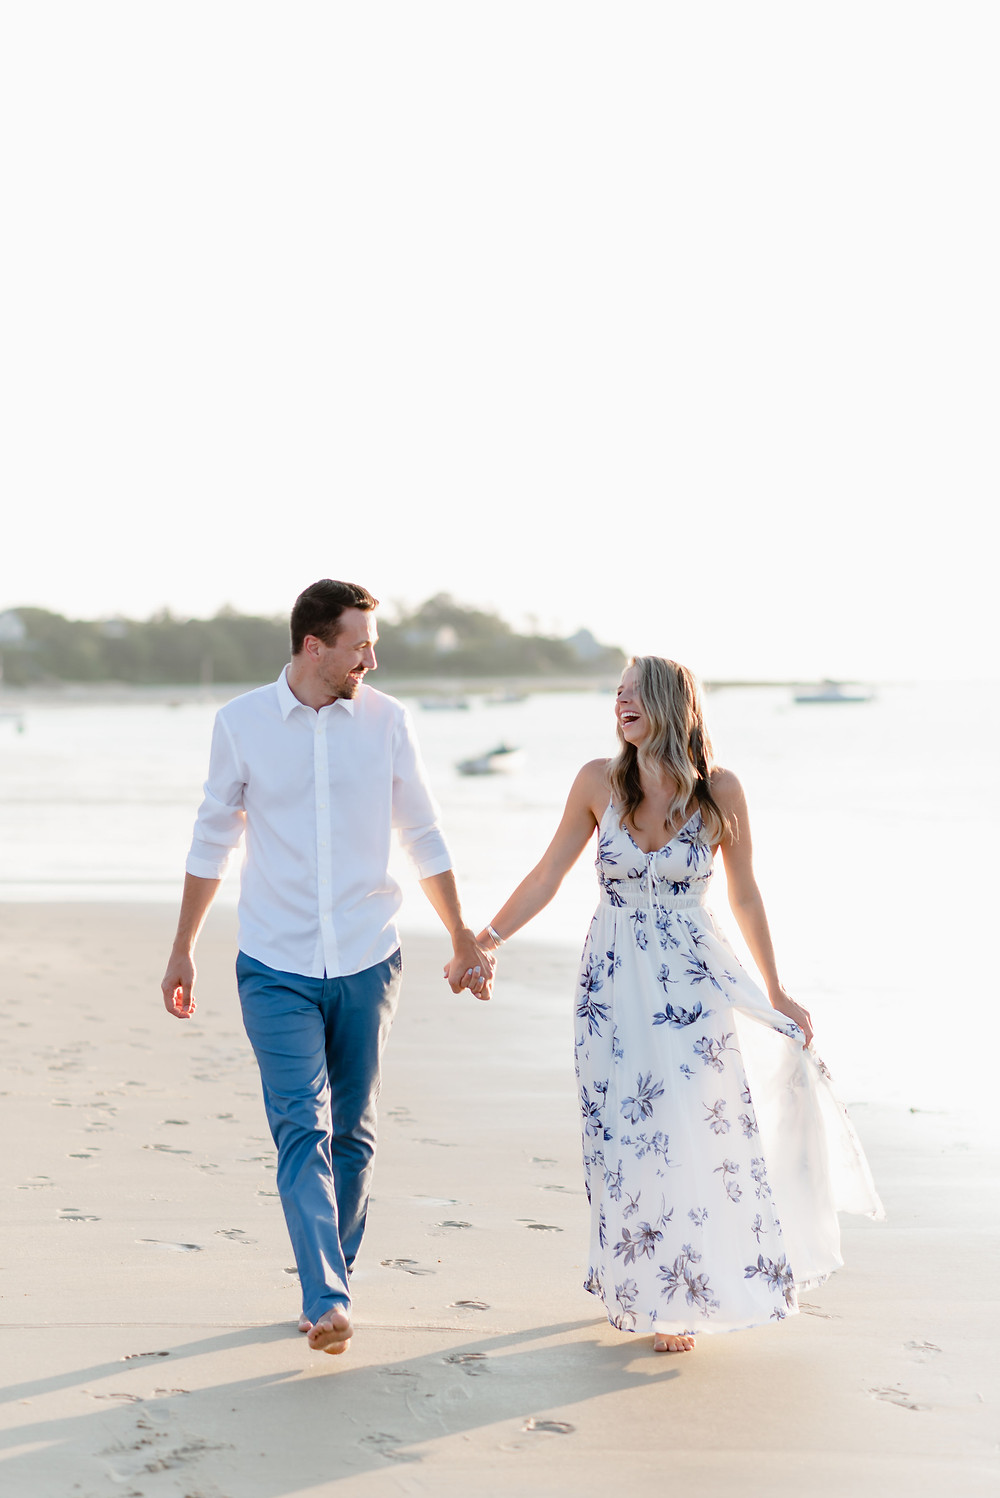 couple walking hand in hand on the beach for engagement photos during golden hour